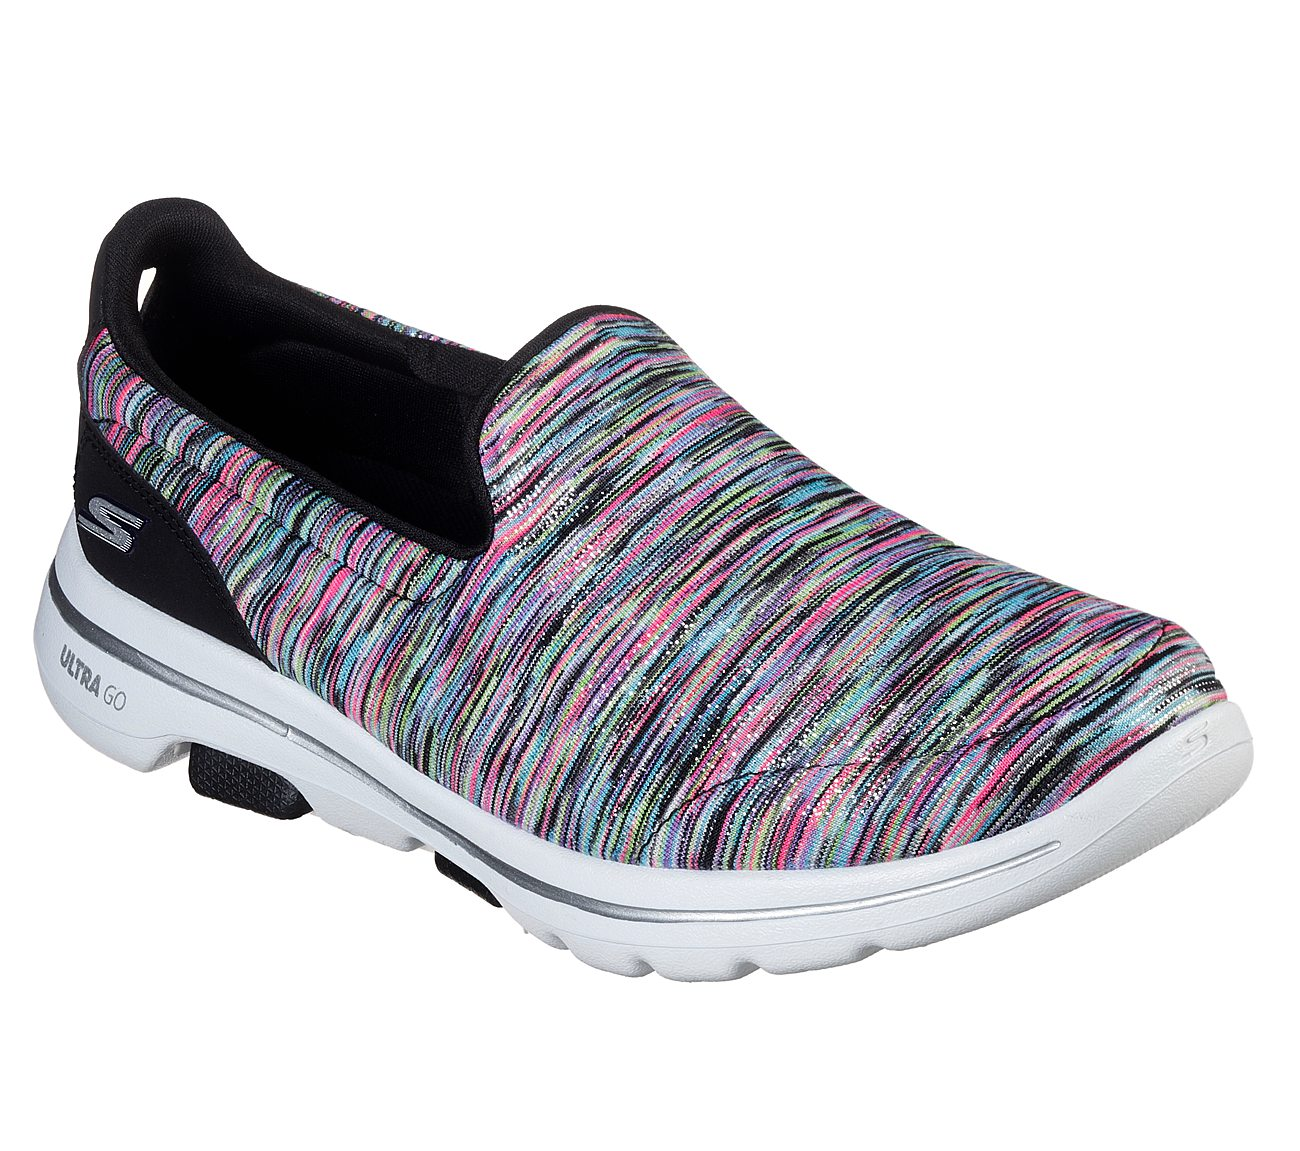 SKETCHERS combined Comfort Flex Technology with a GOga Mat